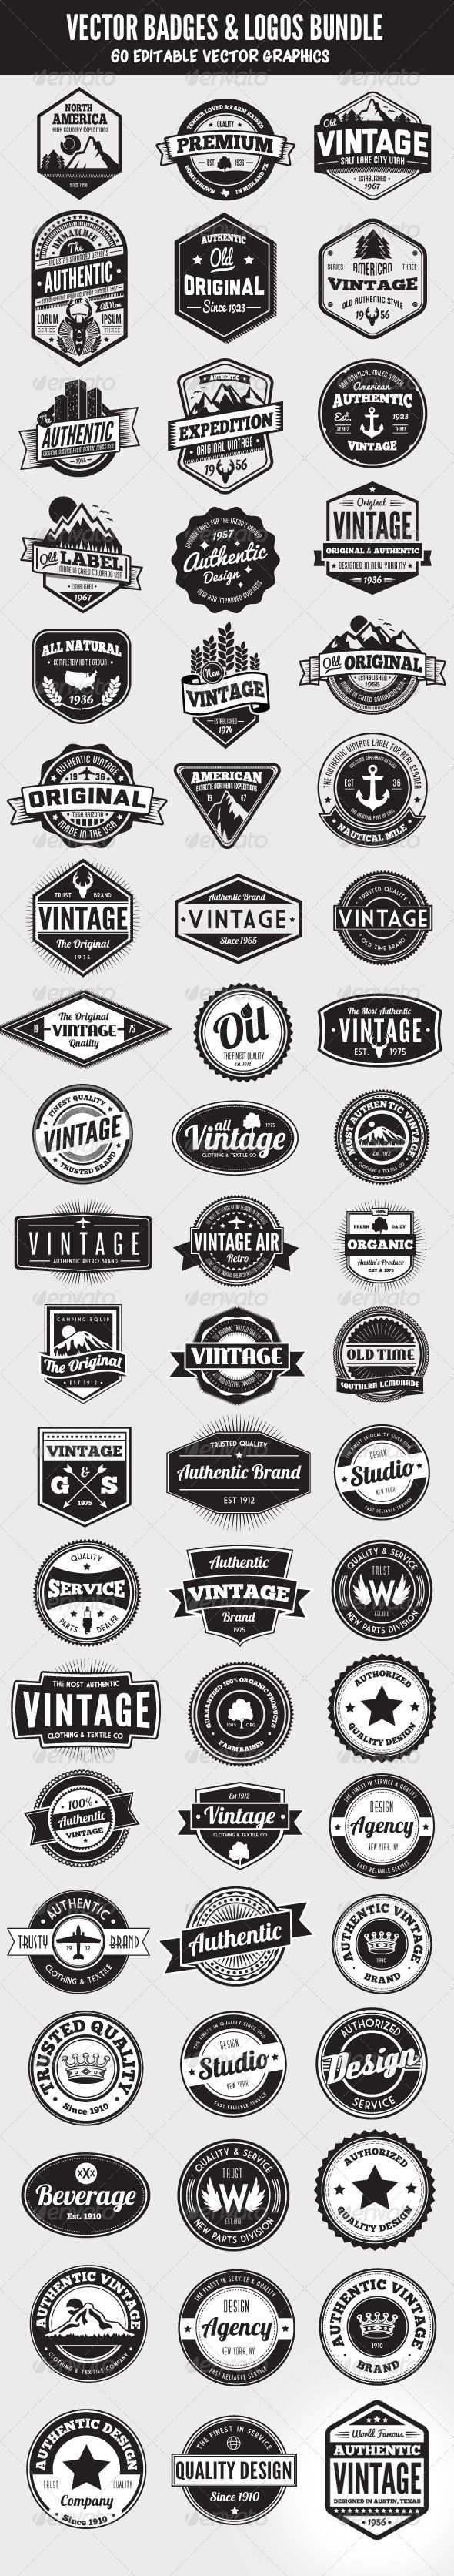 60 Badges and Logos Bundle